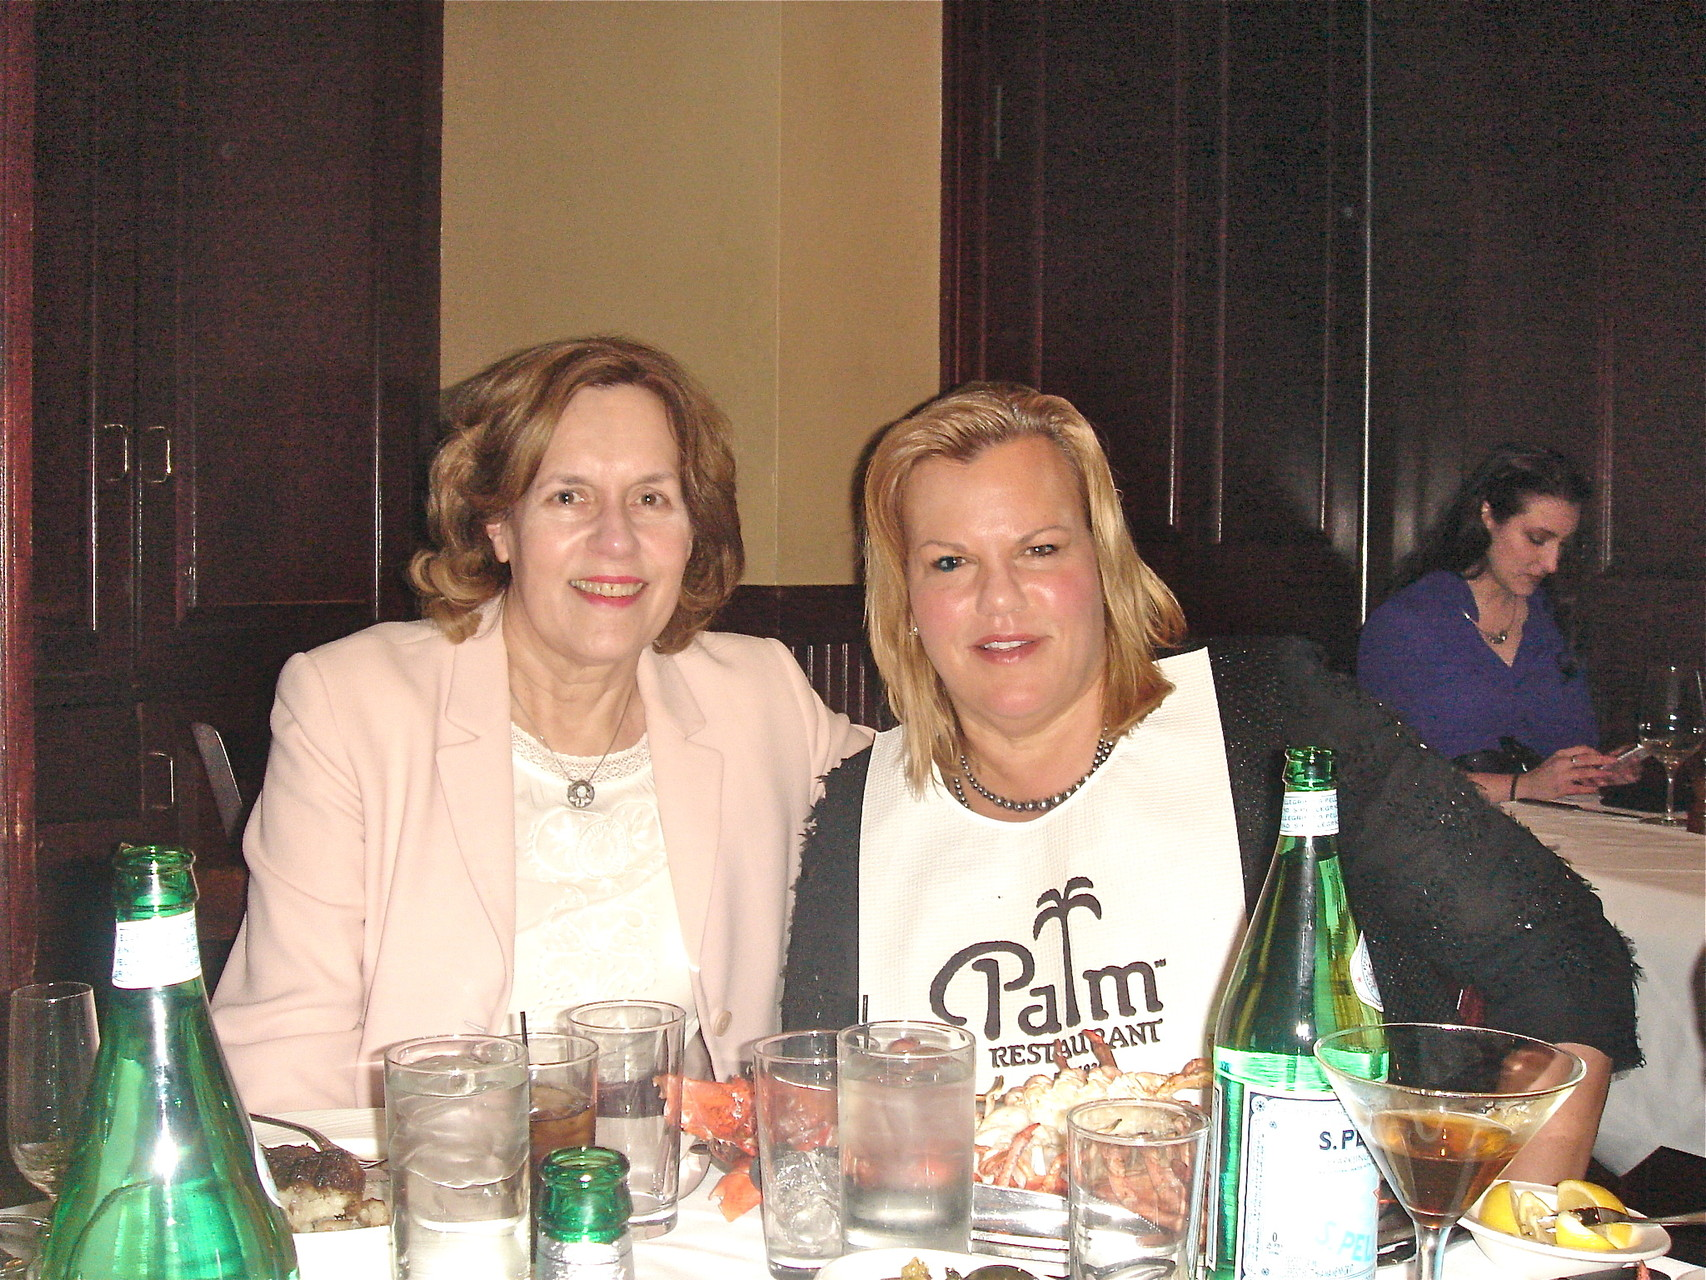 Lorraine & Celeste at dinner, 2-28-15